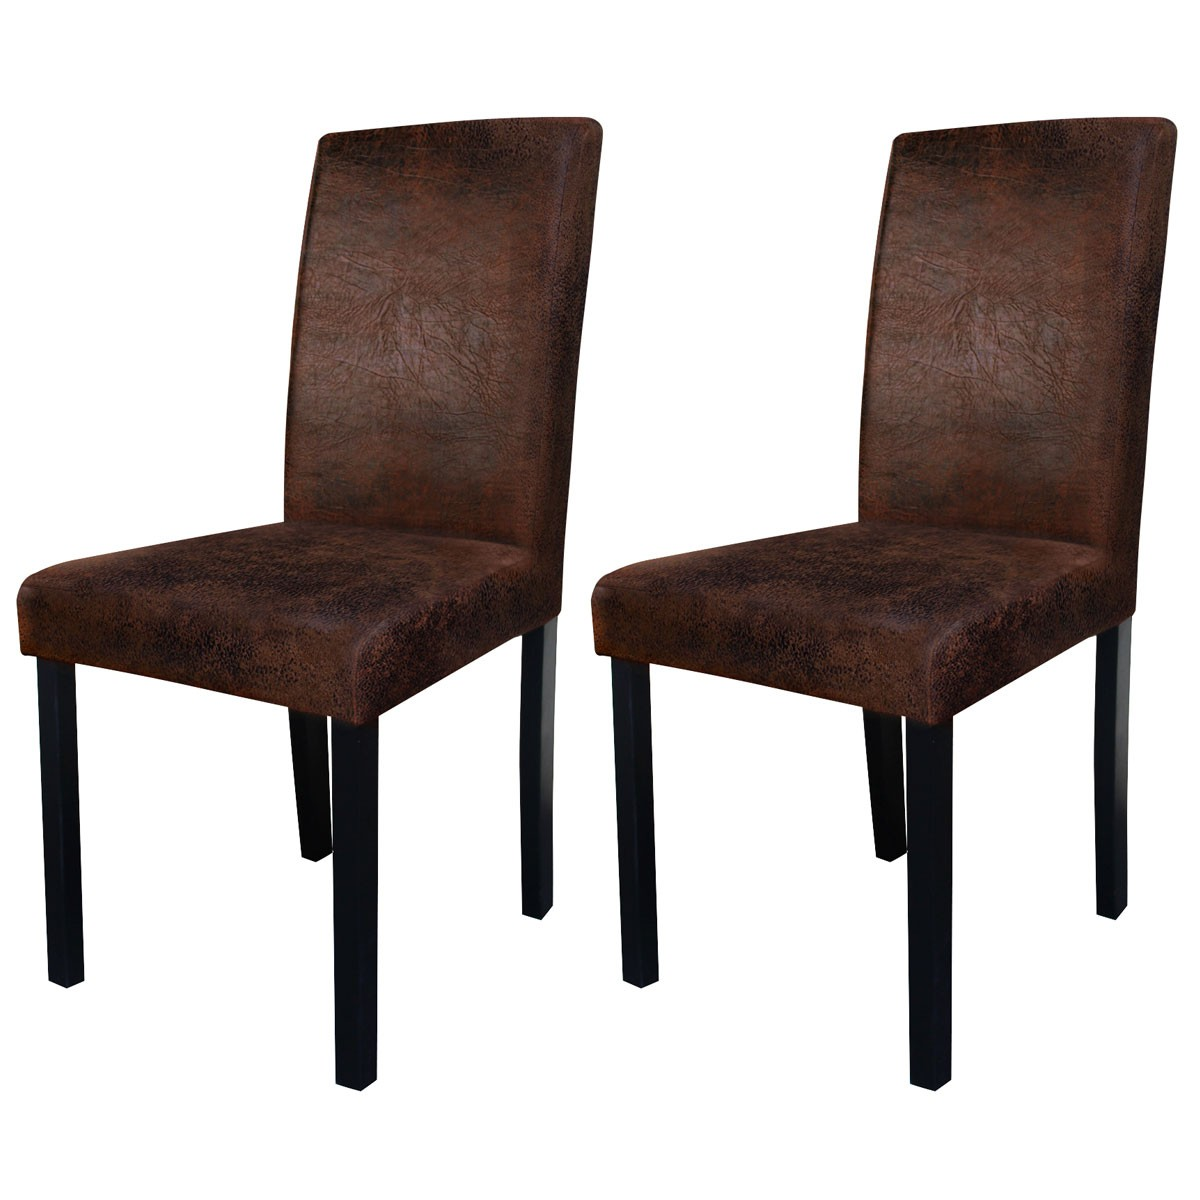 chaise havane marron vieilli lot de 2 choisissez nos. Black Bedroom Furniture Sets. Home Design Ideas